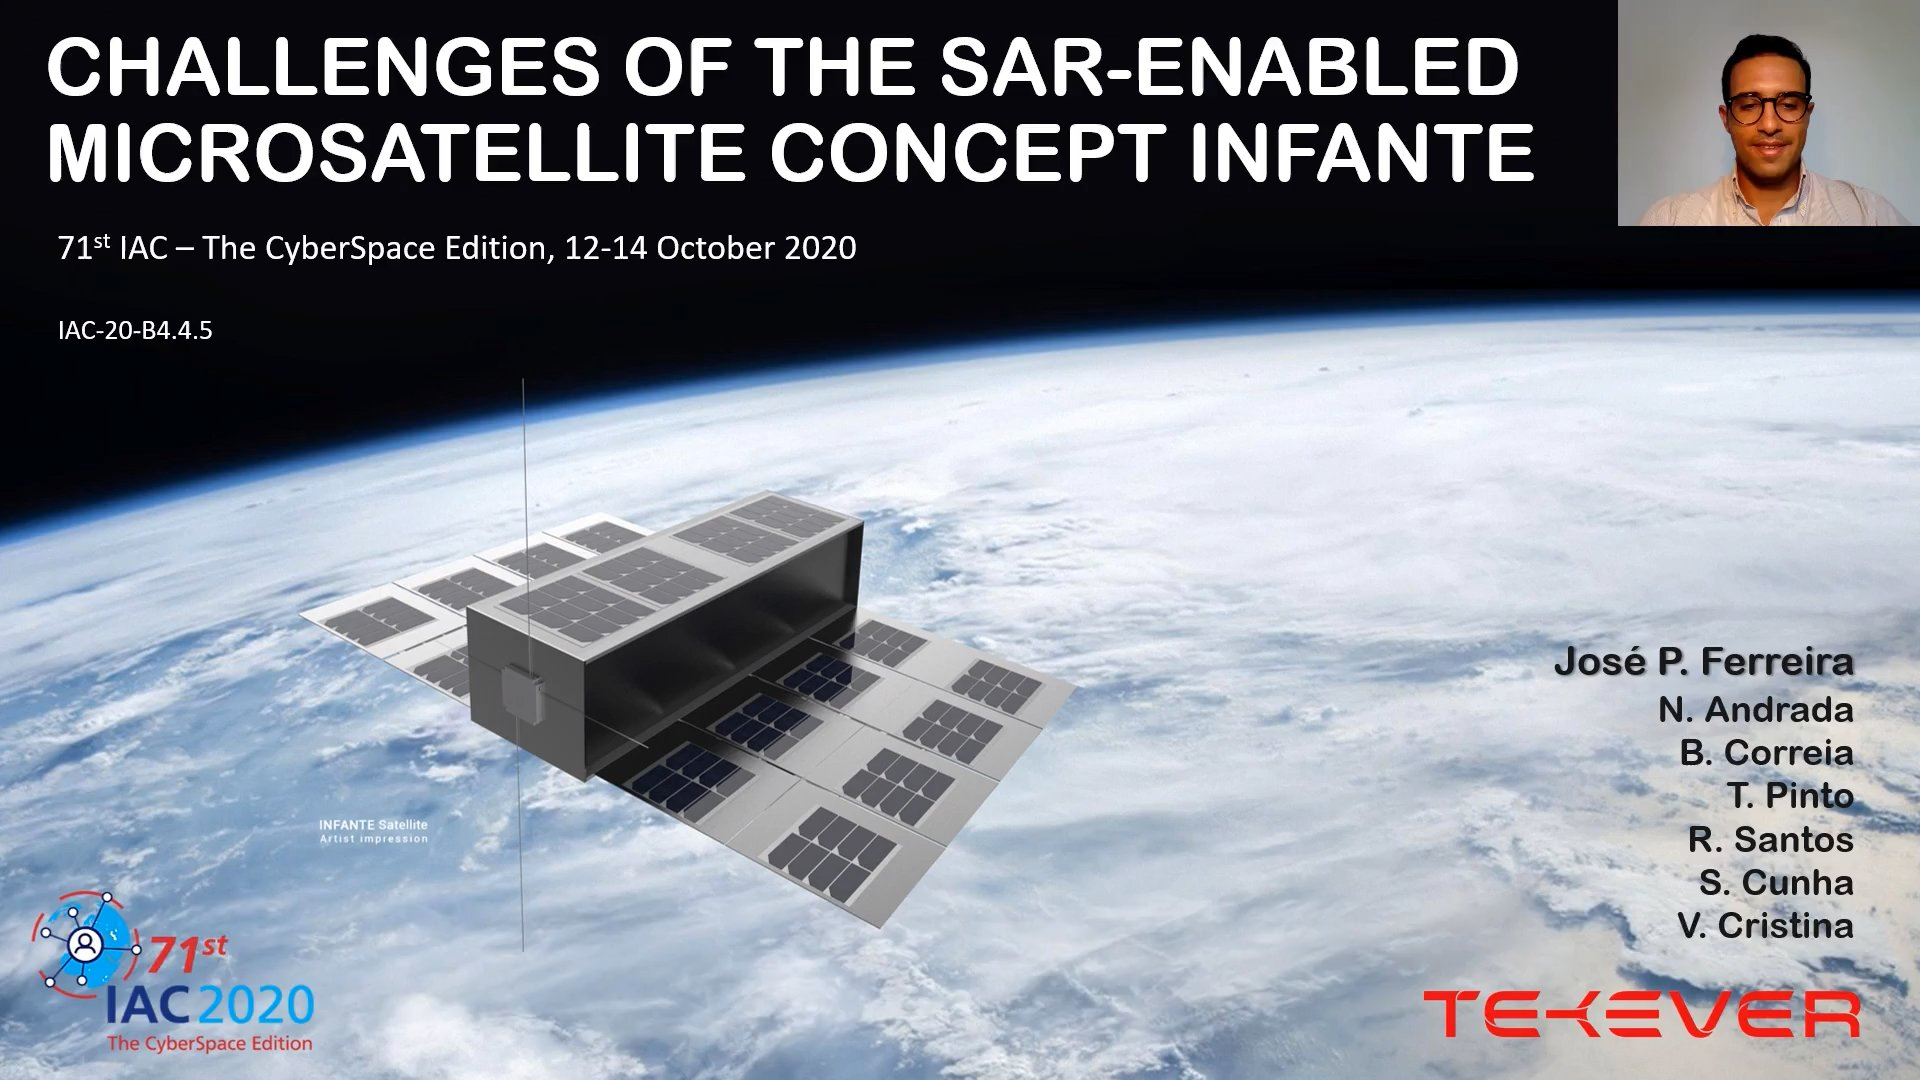 The INFANTE project presented at the IAC 2020